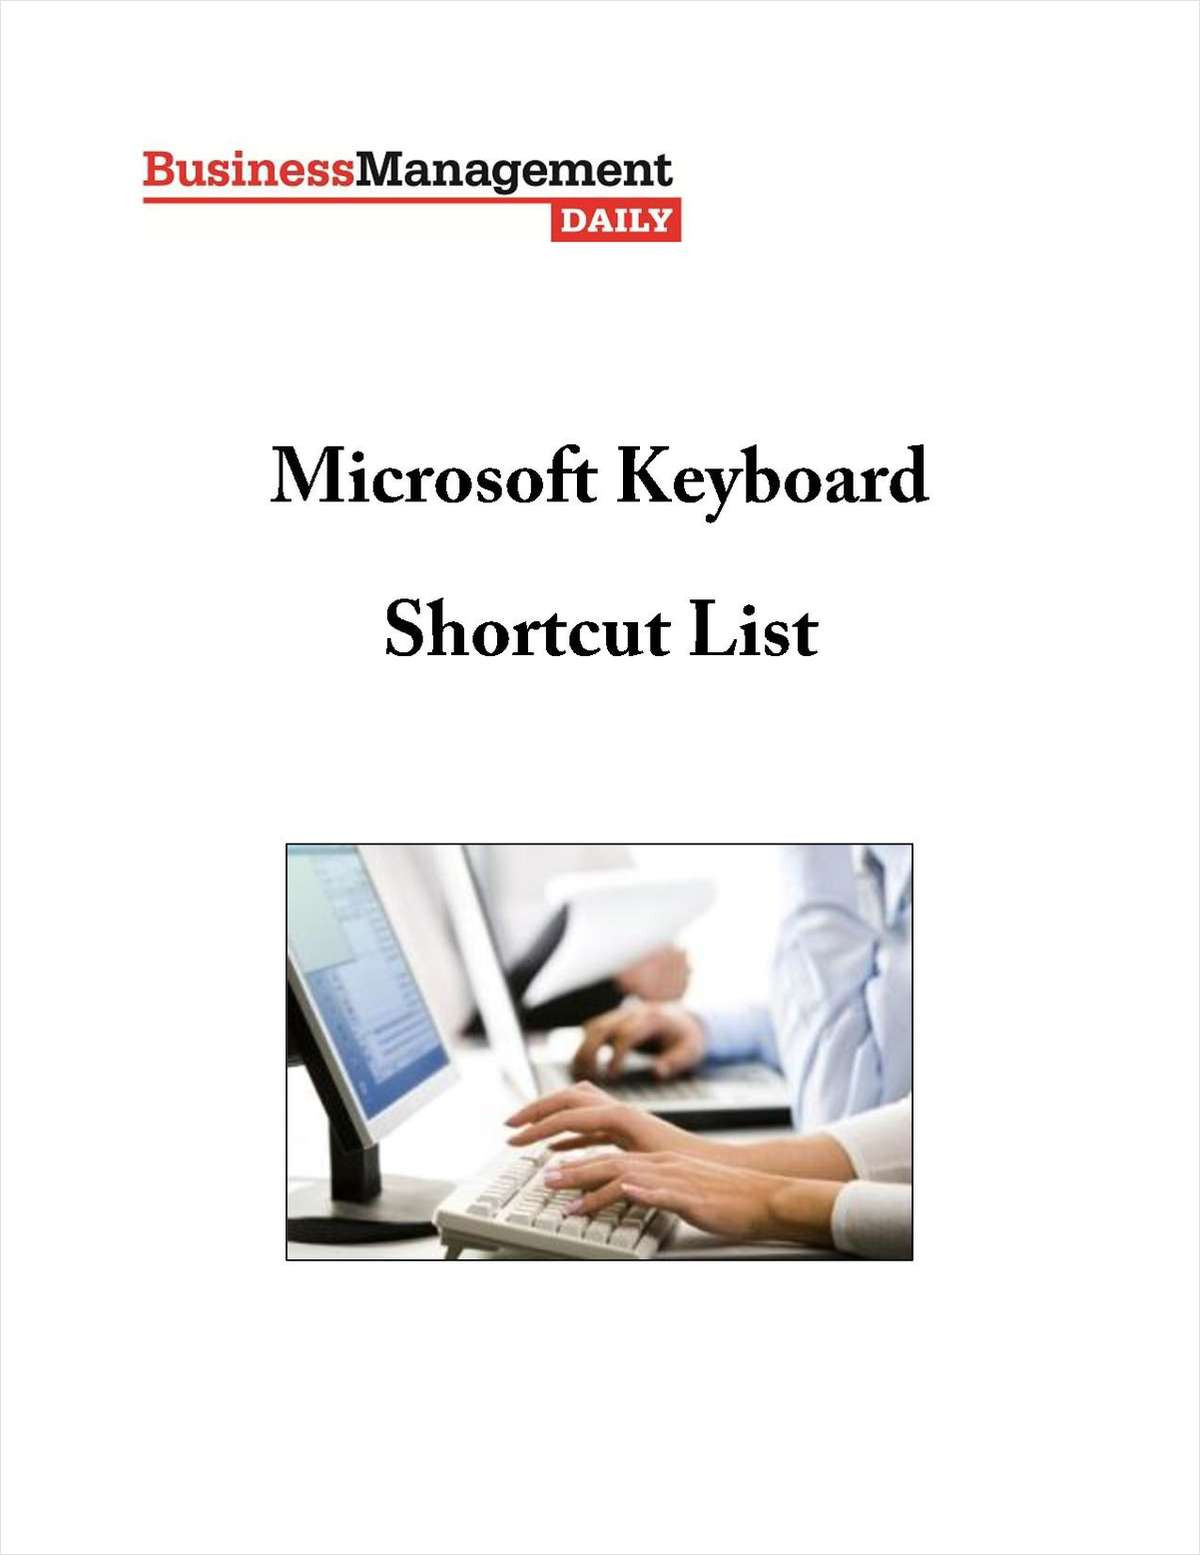 Microsoft Keyboard Shortcut List